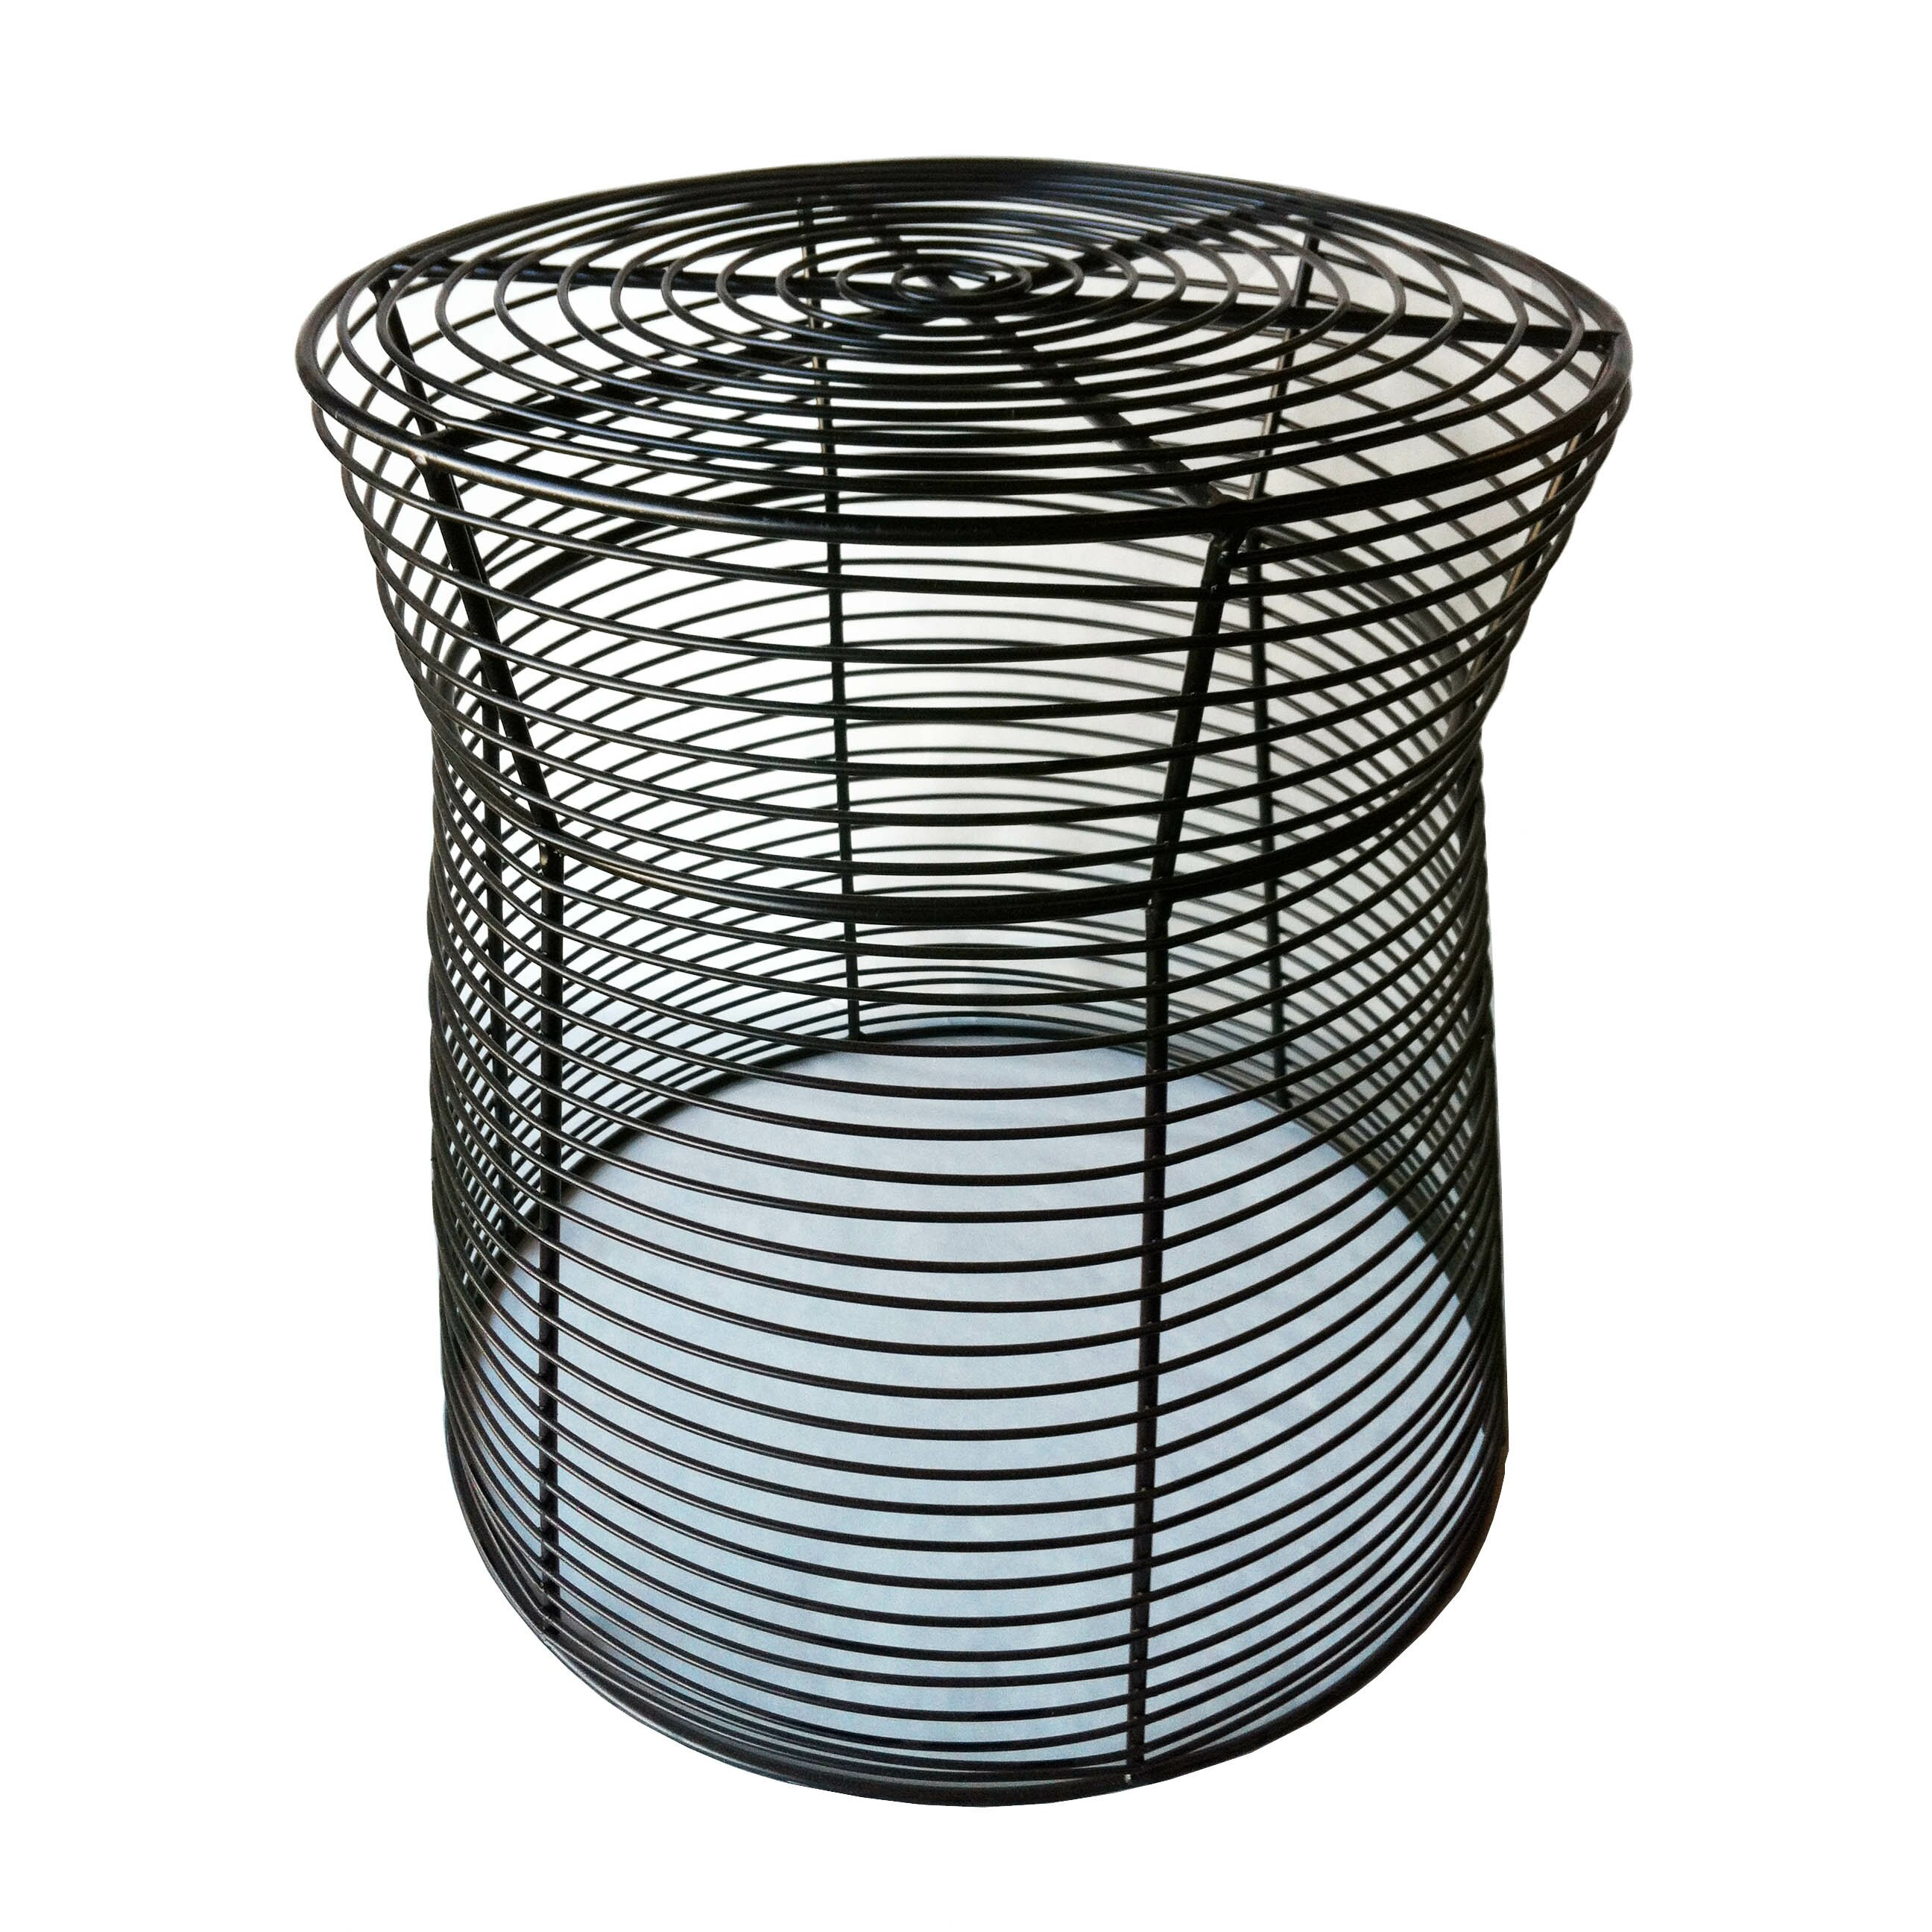 Pangaea metal wire stool or side table reviews wayfair for Garden stool side table